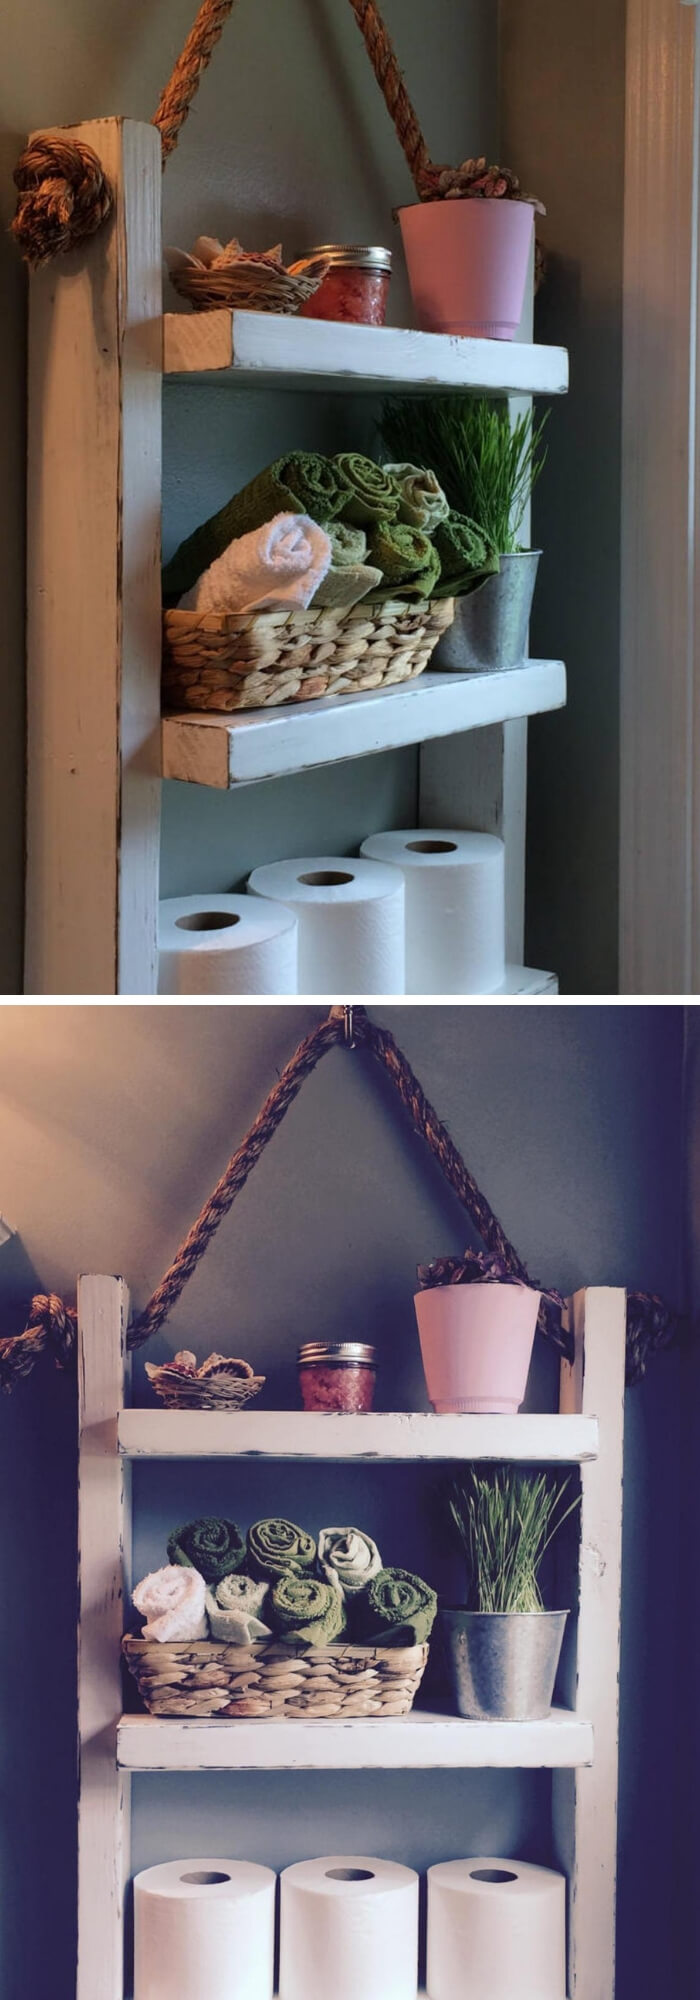 Rope Hanging Shelf | Best Over the Toilet Storage Ideas for Bathroom